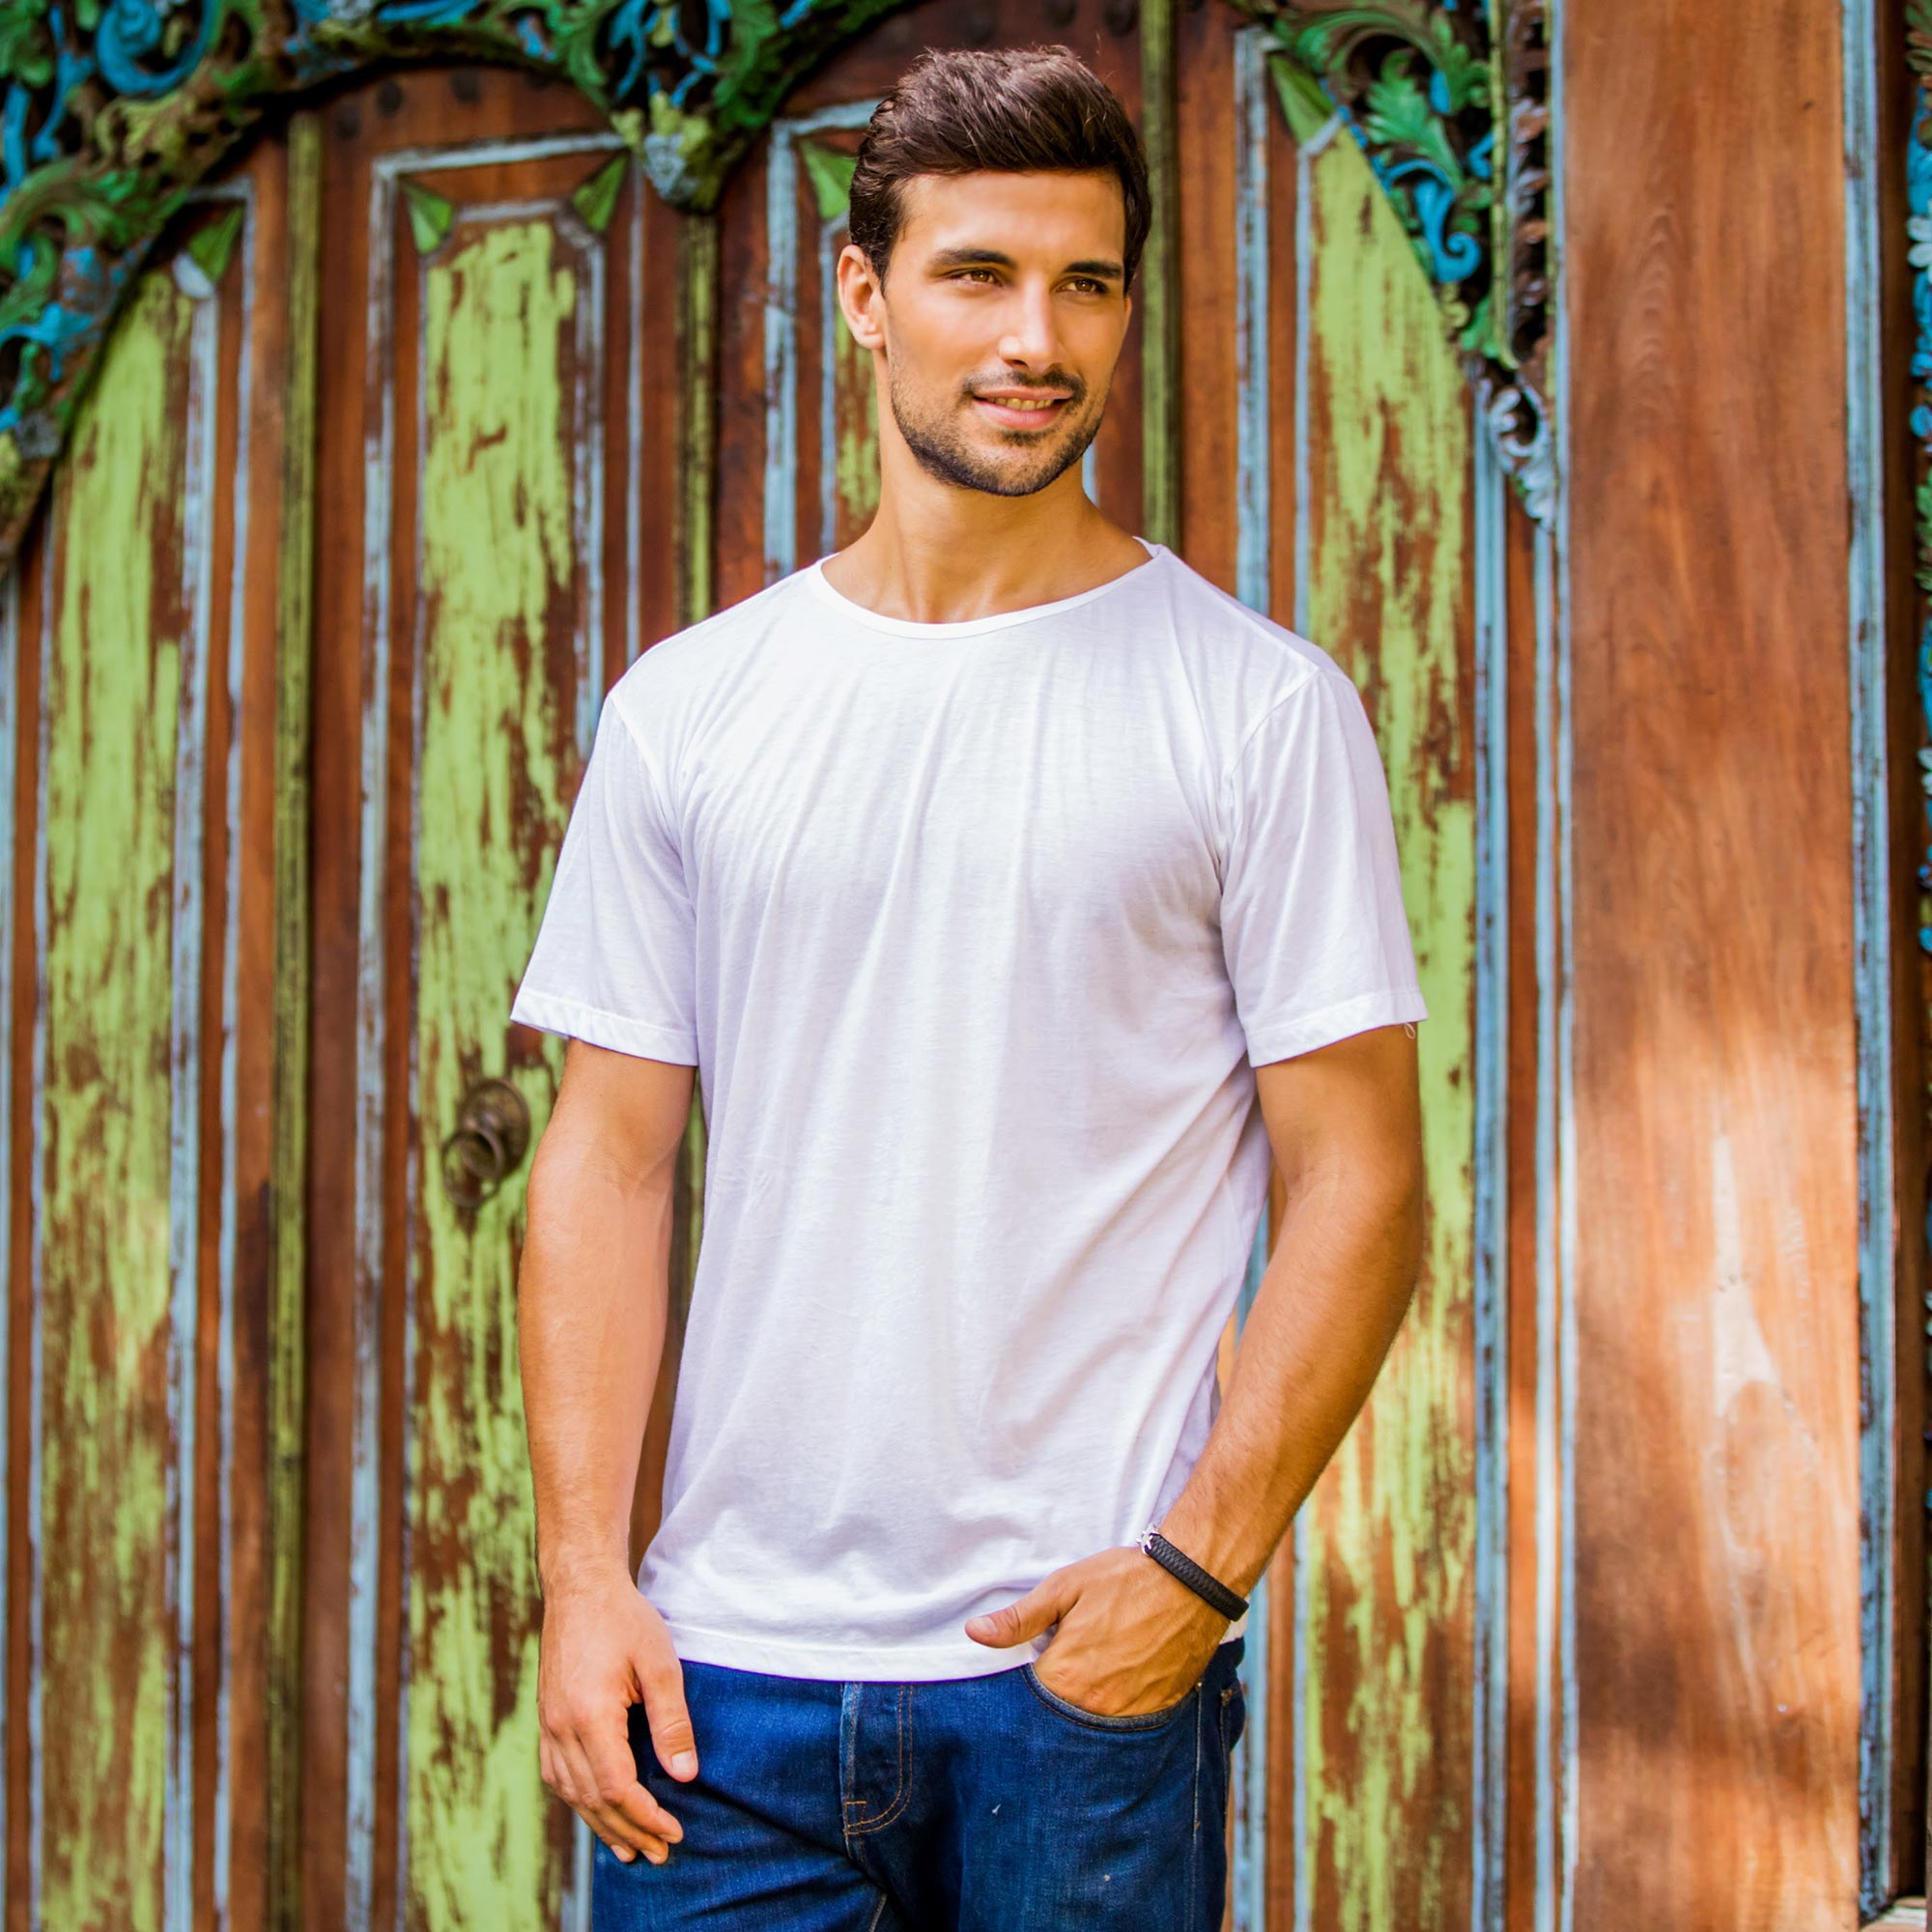 White All Cotton Jersey Founder's T-shirt for Men Holiday Gifts Gift Ideas Under $25 on a Budget